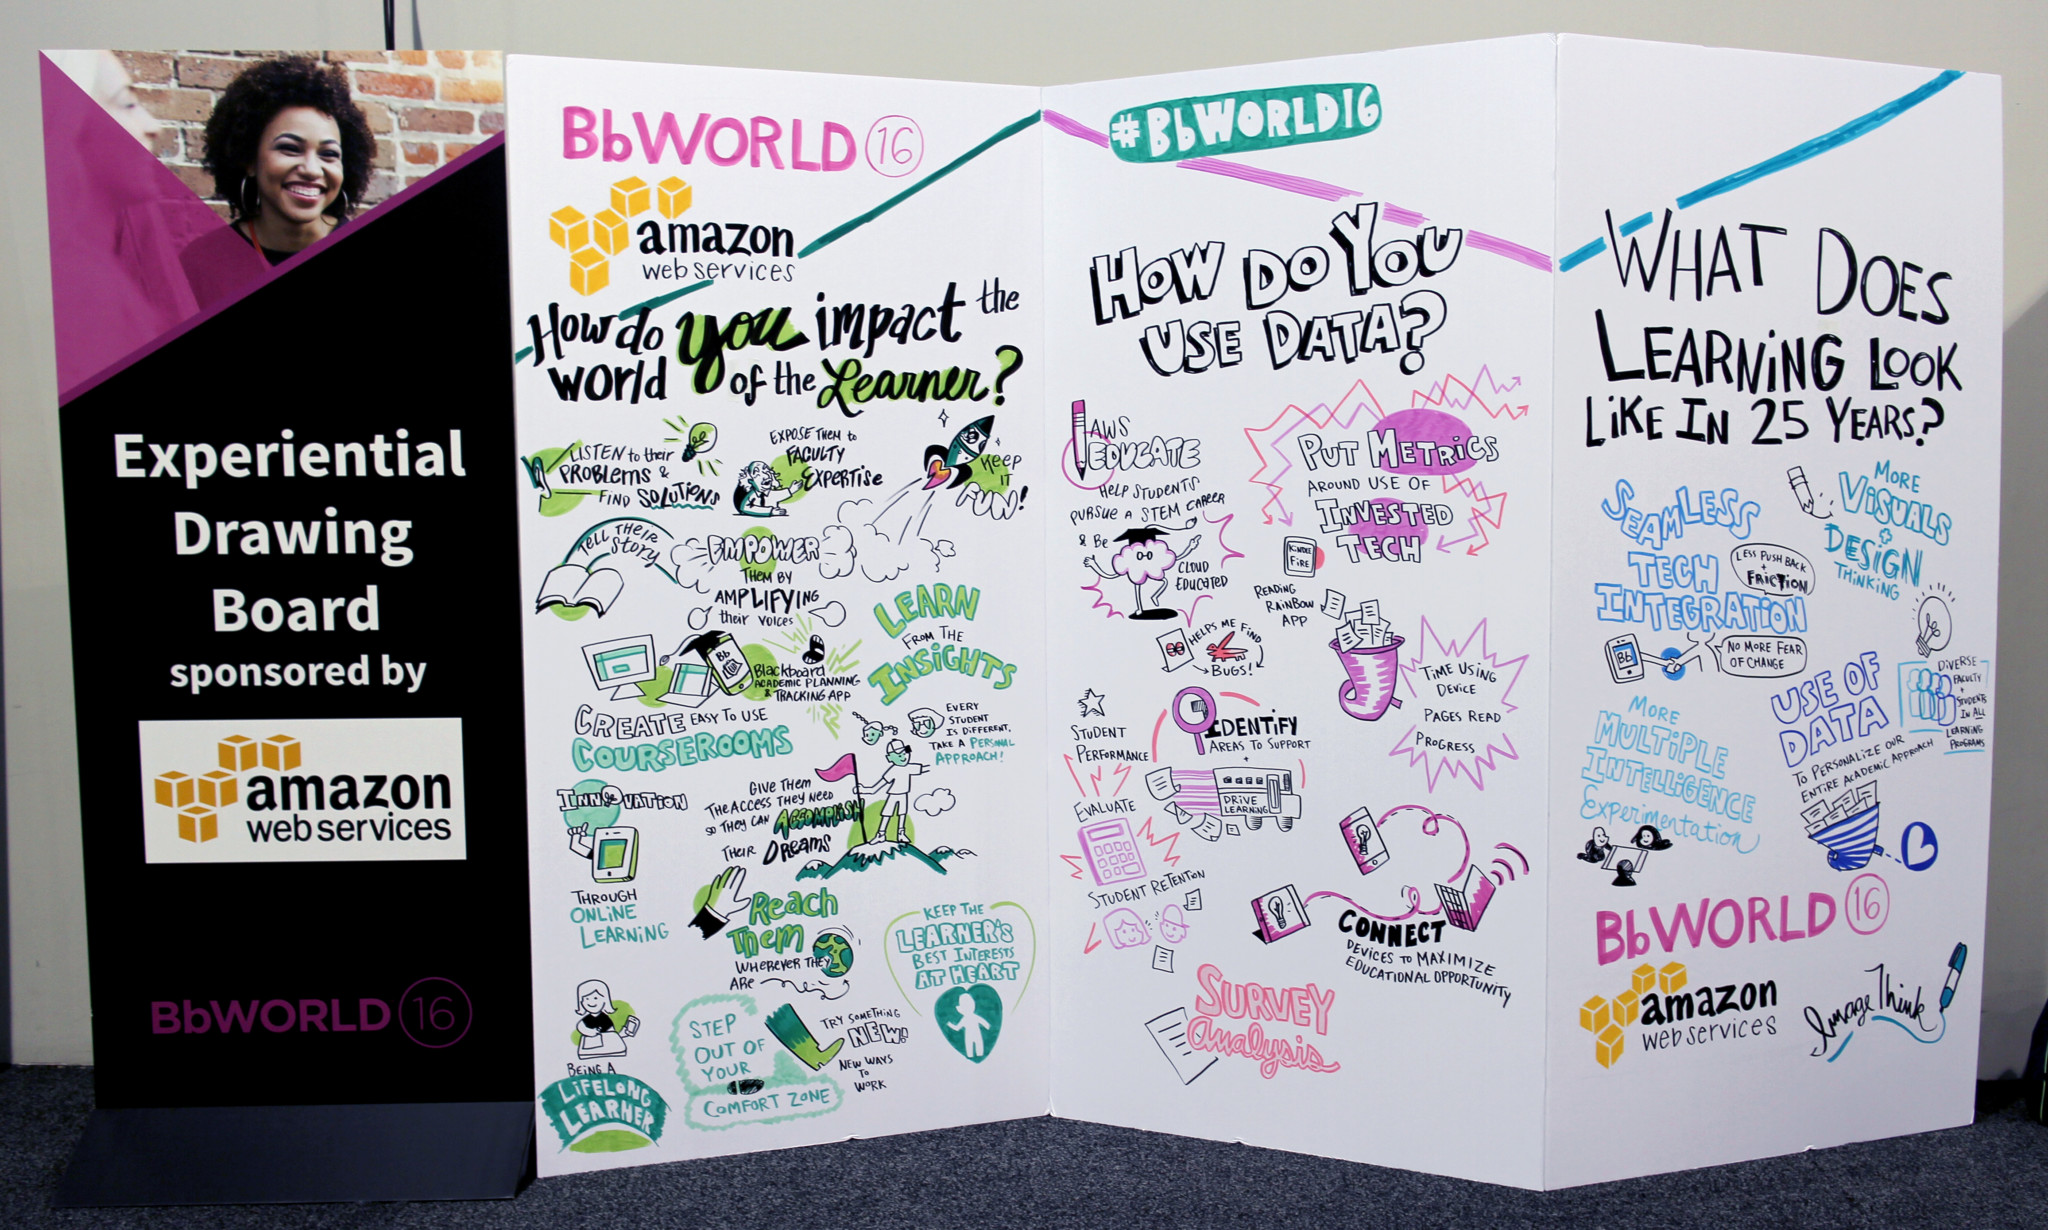 """imagethink graphic recording social listening wall at bbworld 2016. Large foam core accordion style wall display of conference engagement. 3 education themed questions and responses from attendees drawn up in fun infographics. The questions are """"how do you impact the world of the learner?"""", """"how do you use data?"""", and """"what does learning look like in 25 years?"""". Learn from the insights, have the learner's best interests at heart, keep it fun, being a lifelong learner, put metrics around ROI, evaluate student retention, more visuals in learning, seamless tech integration are among the answers drawn up."""